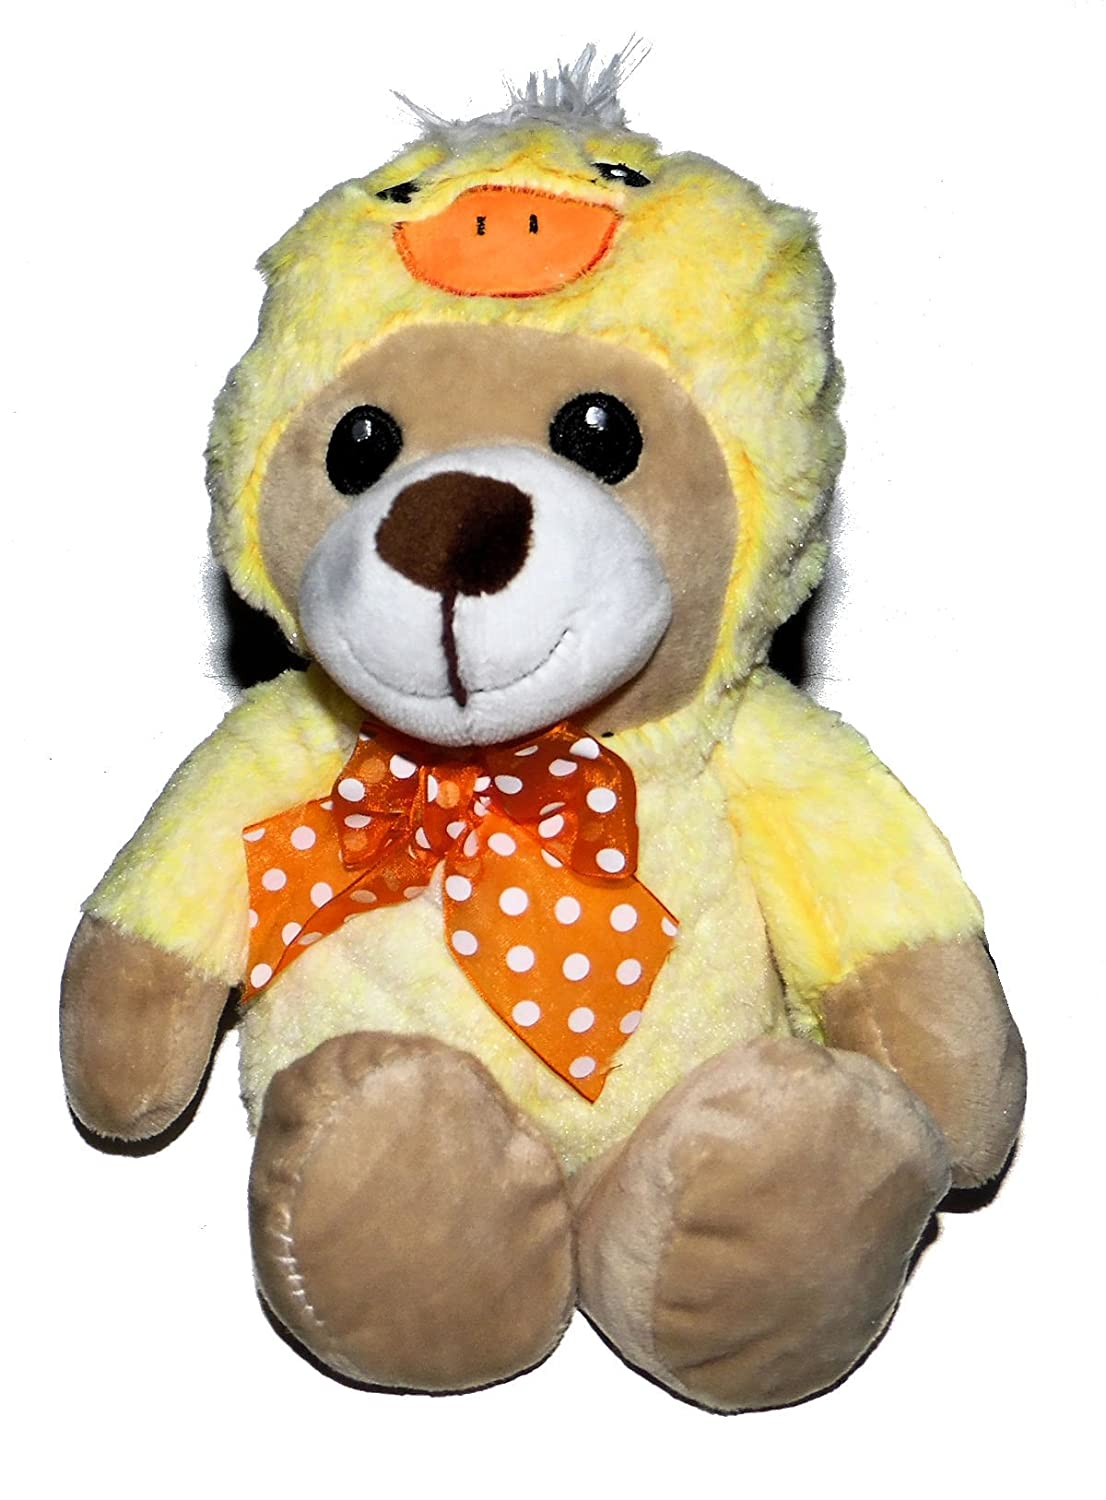 Amazon.com: Oso de peluche en color amarillo pato de pato ...